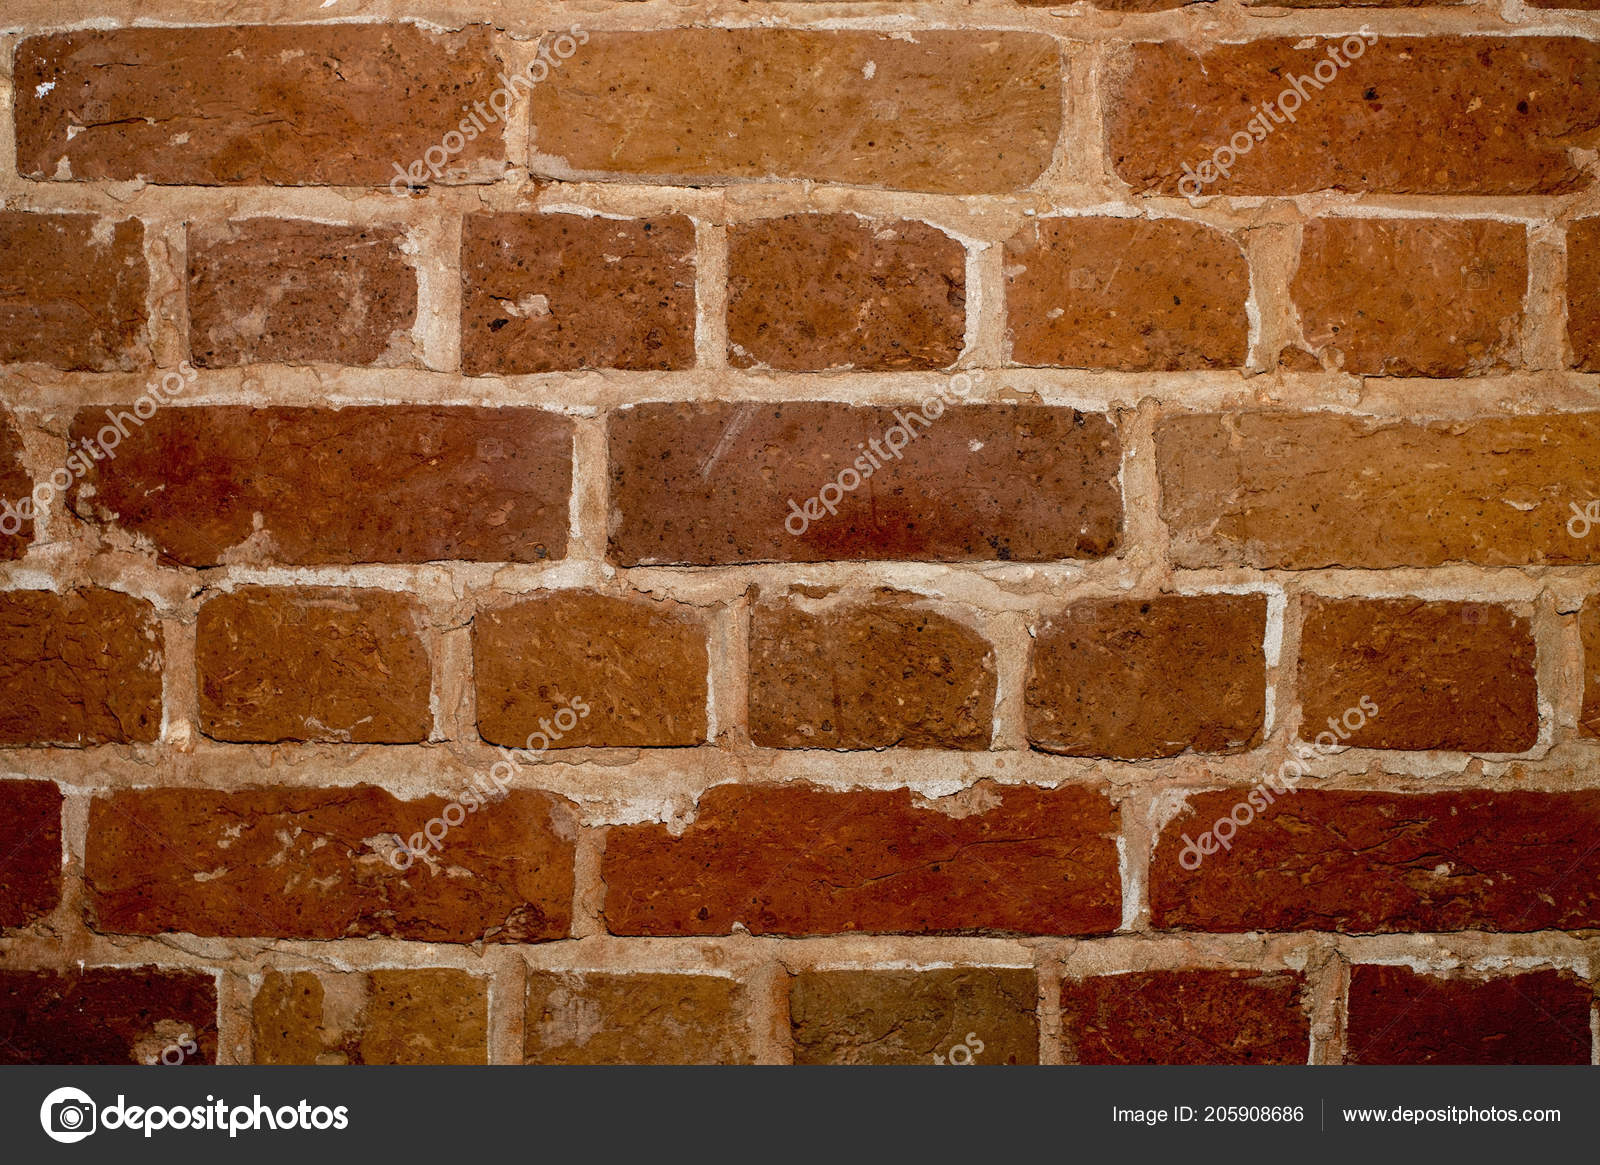 Tremendous Part Wall Old House Red Brickclose Background Stock Photo Download Free Architecture Designs Embacsunscenecom